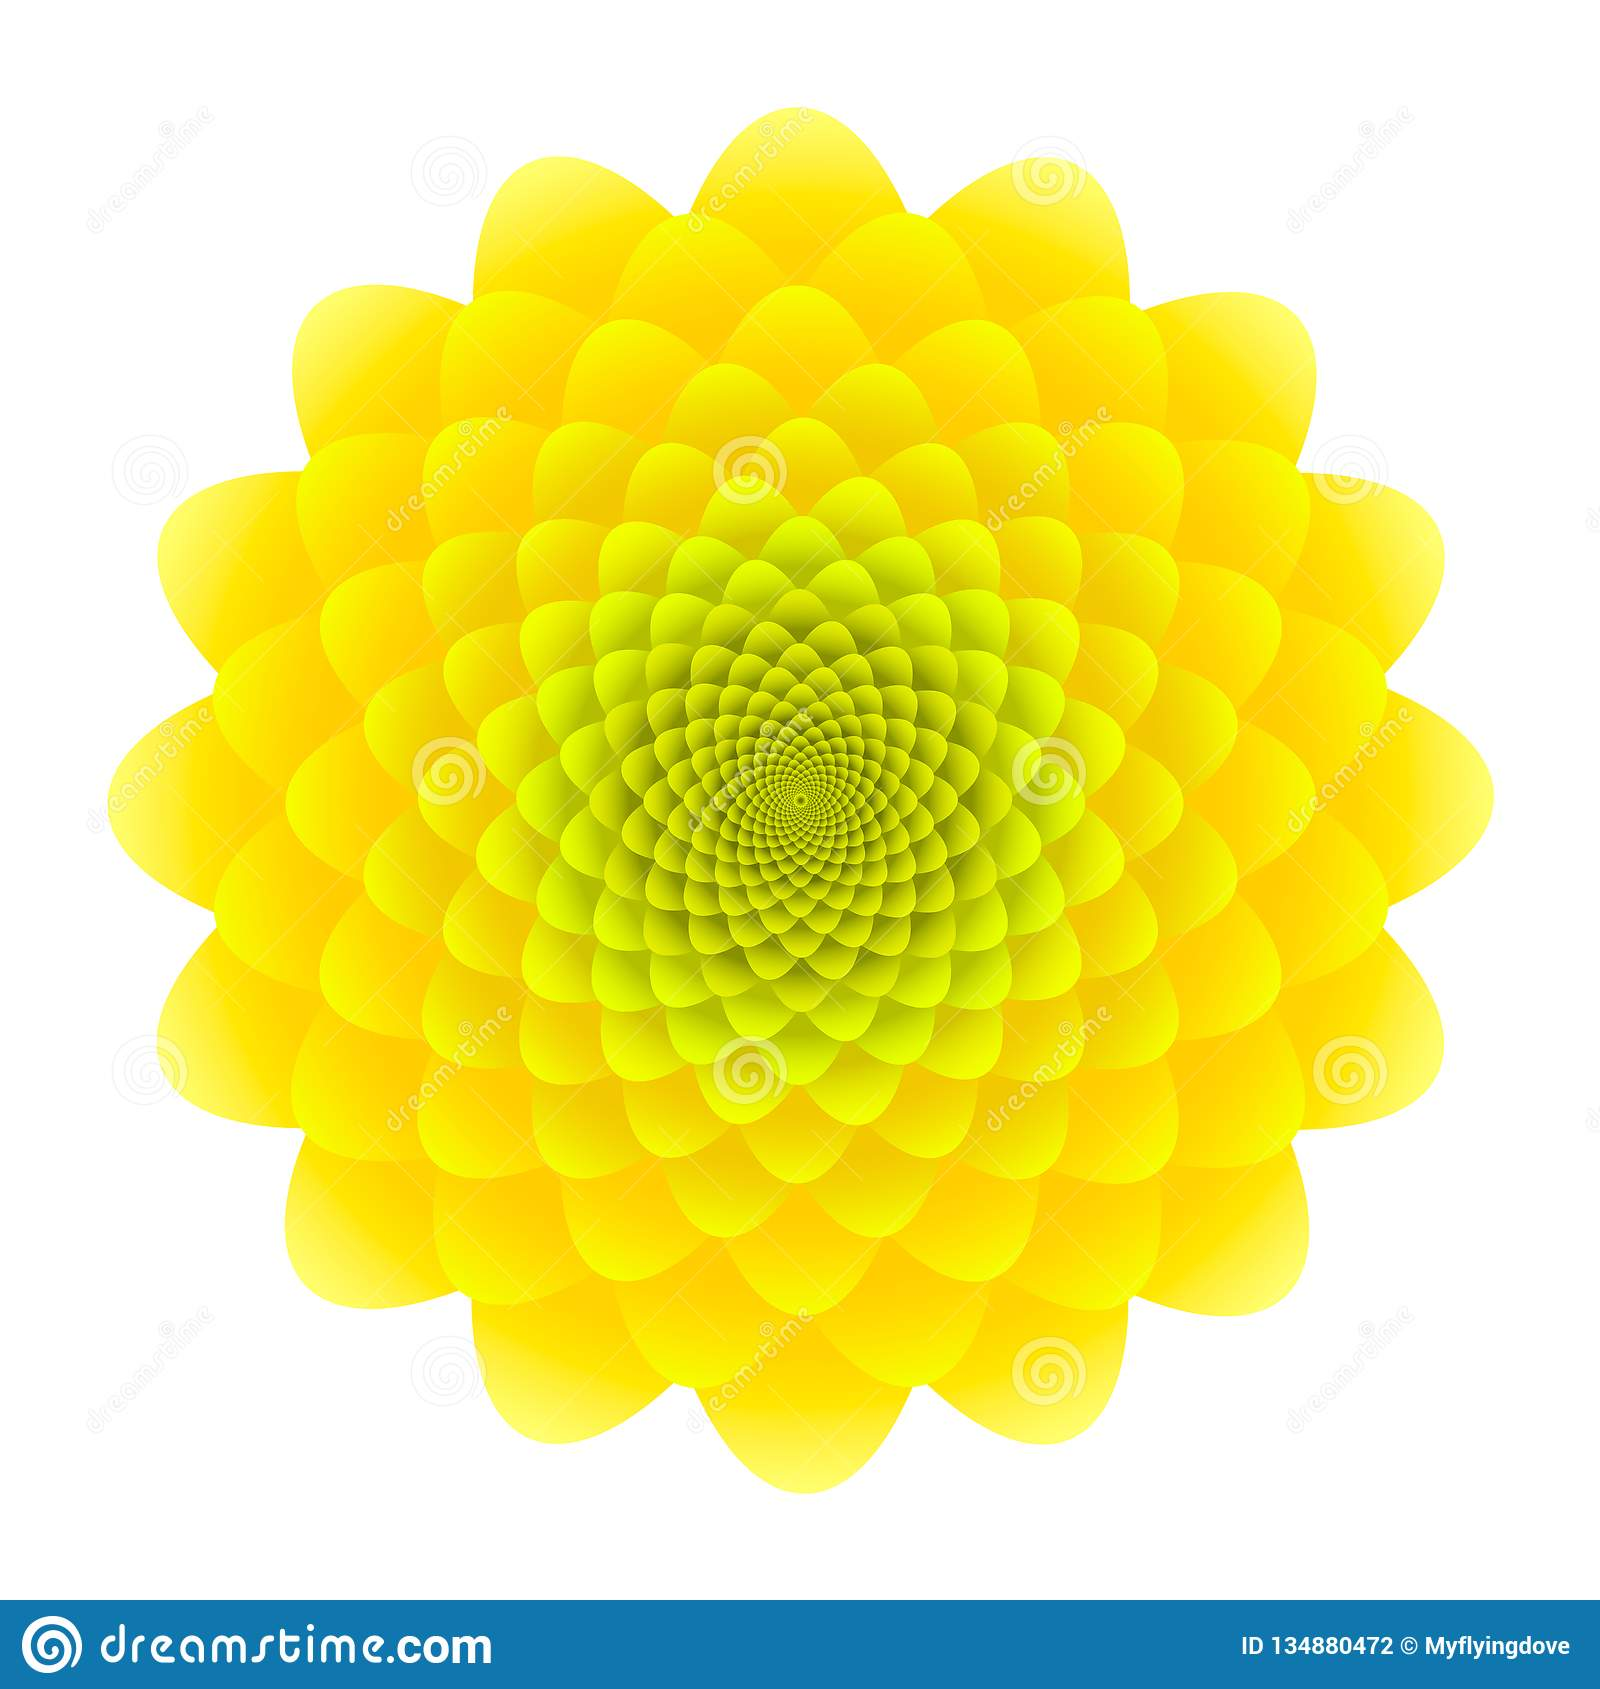 Yellow Sunflower inflorescence. Abstract floral pattern isolated on white background